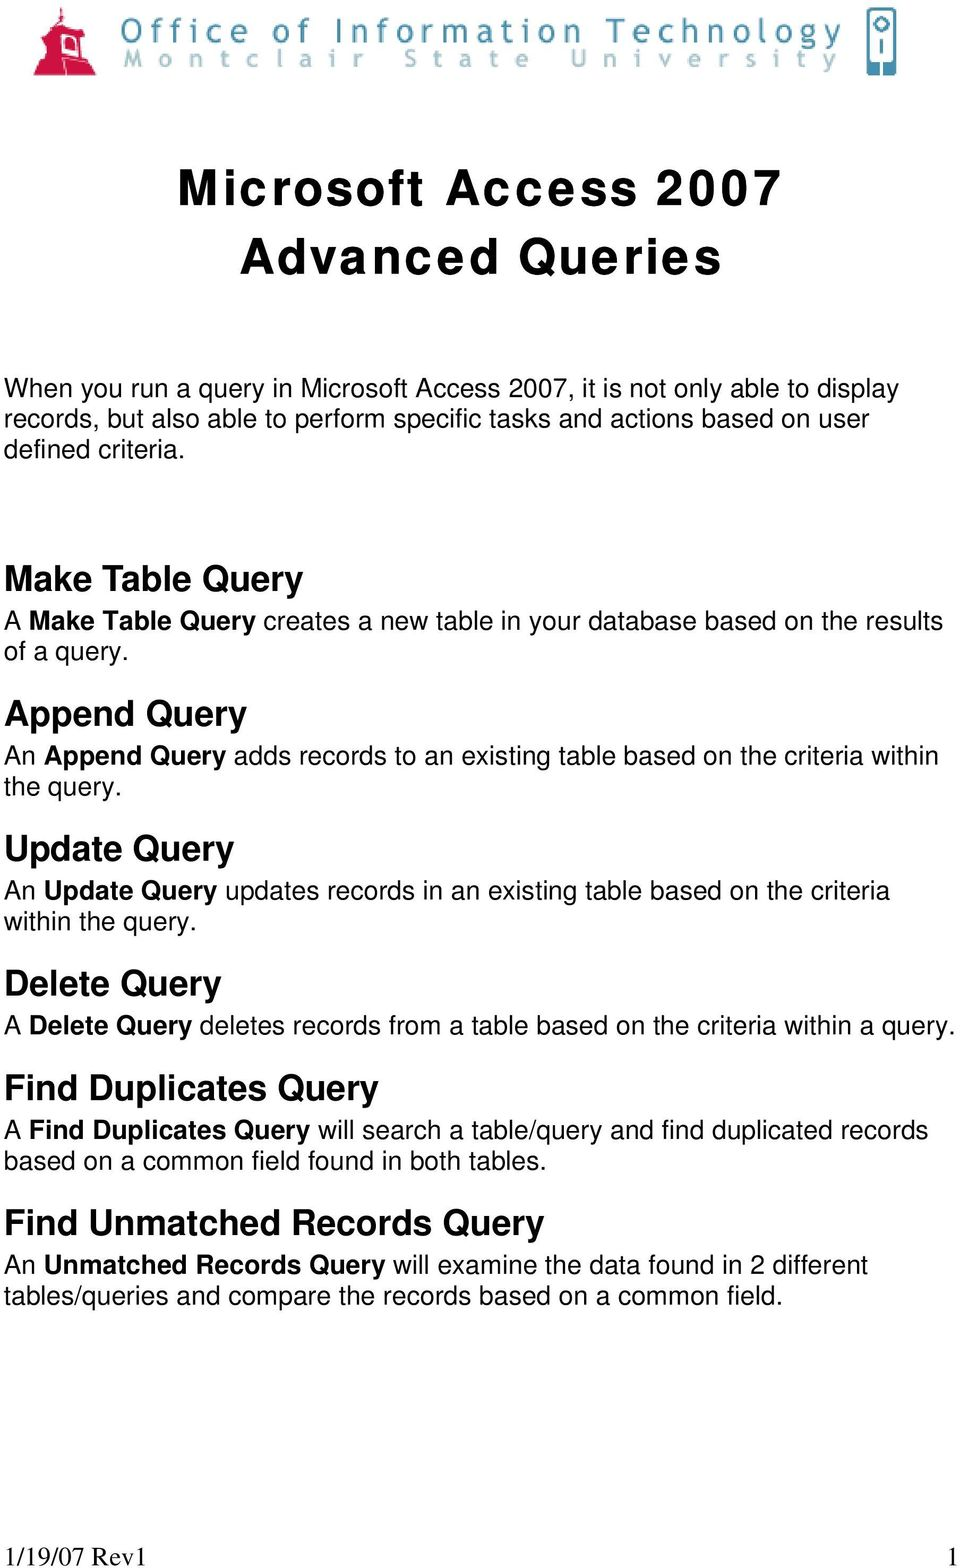 Append Query An Append Query adds records to an existing table based on the criteria within the query.